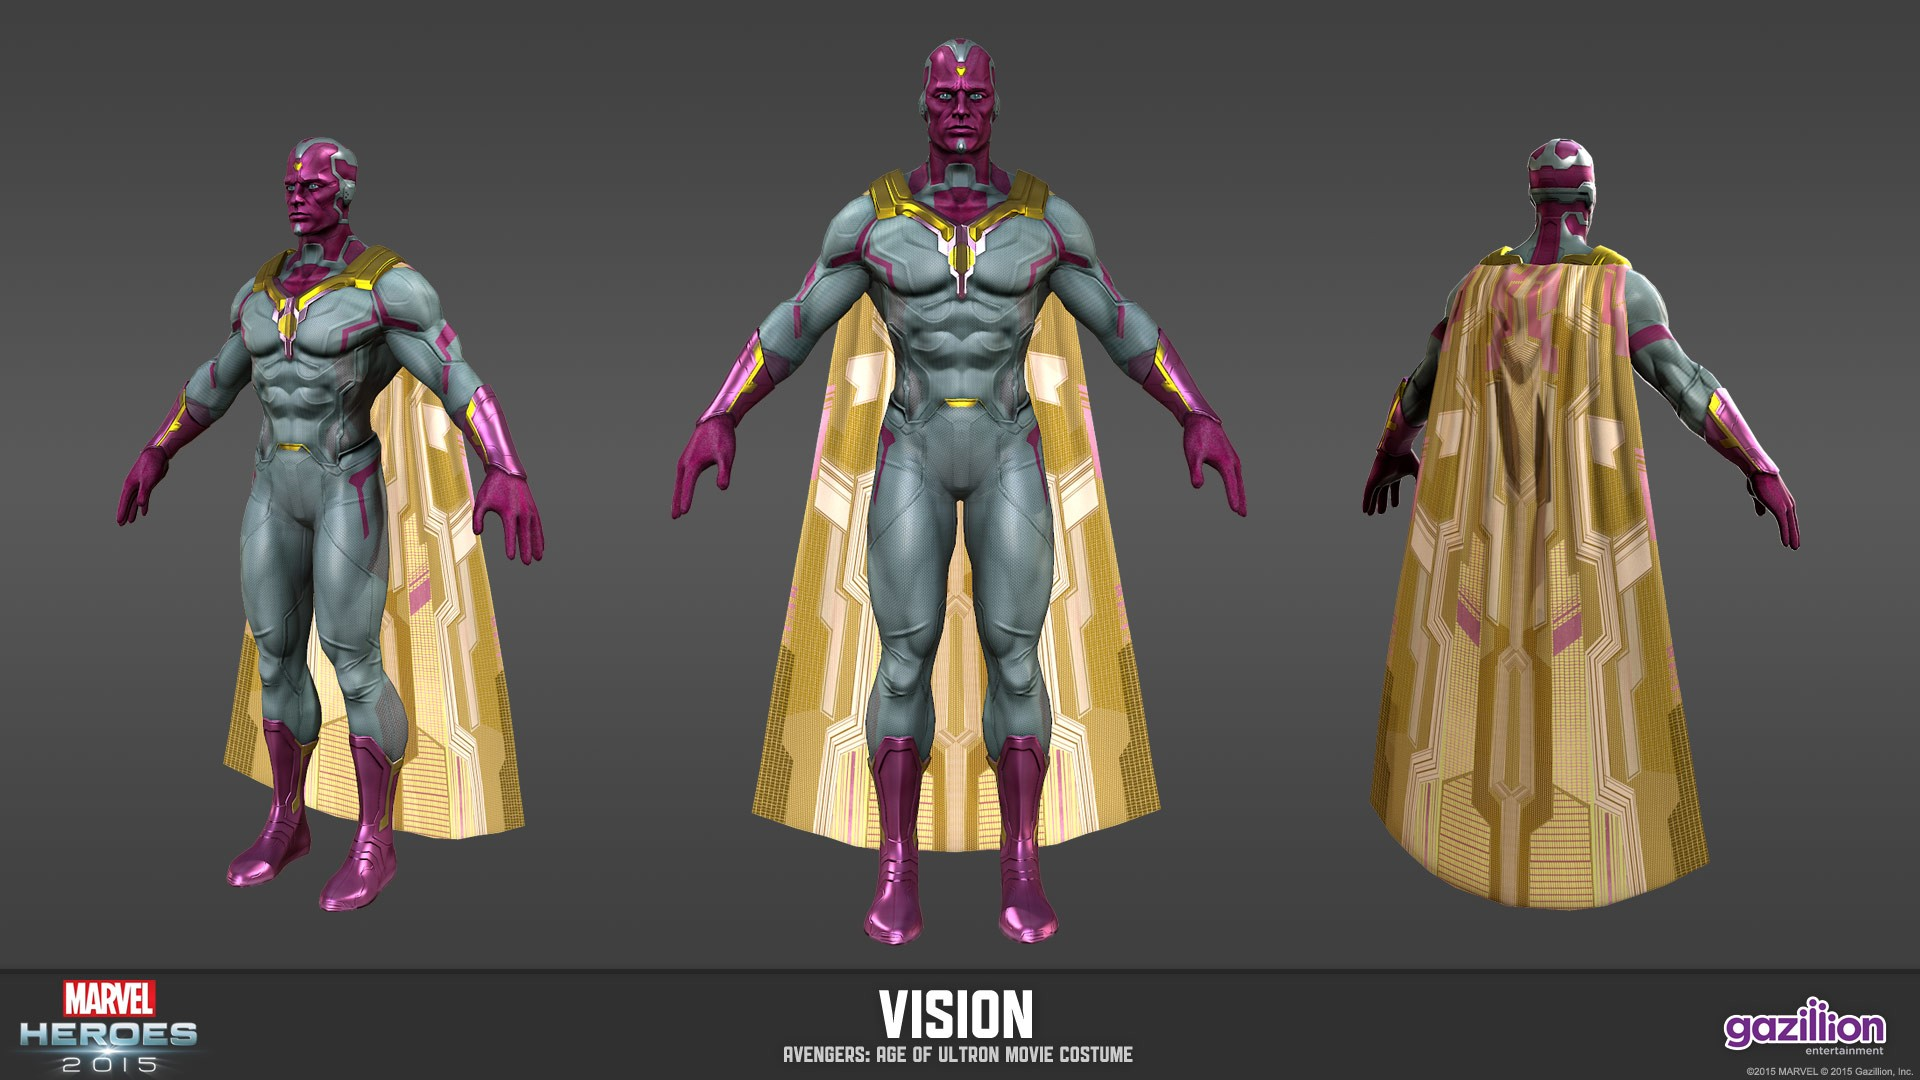 Marvel Heroes 2015 Gets Avengers Age Of Ultron Related